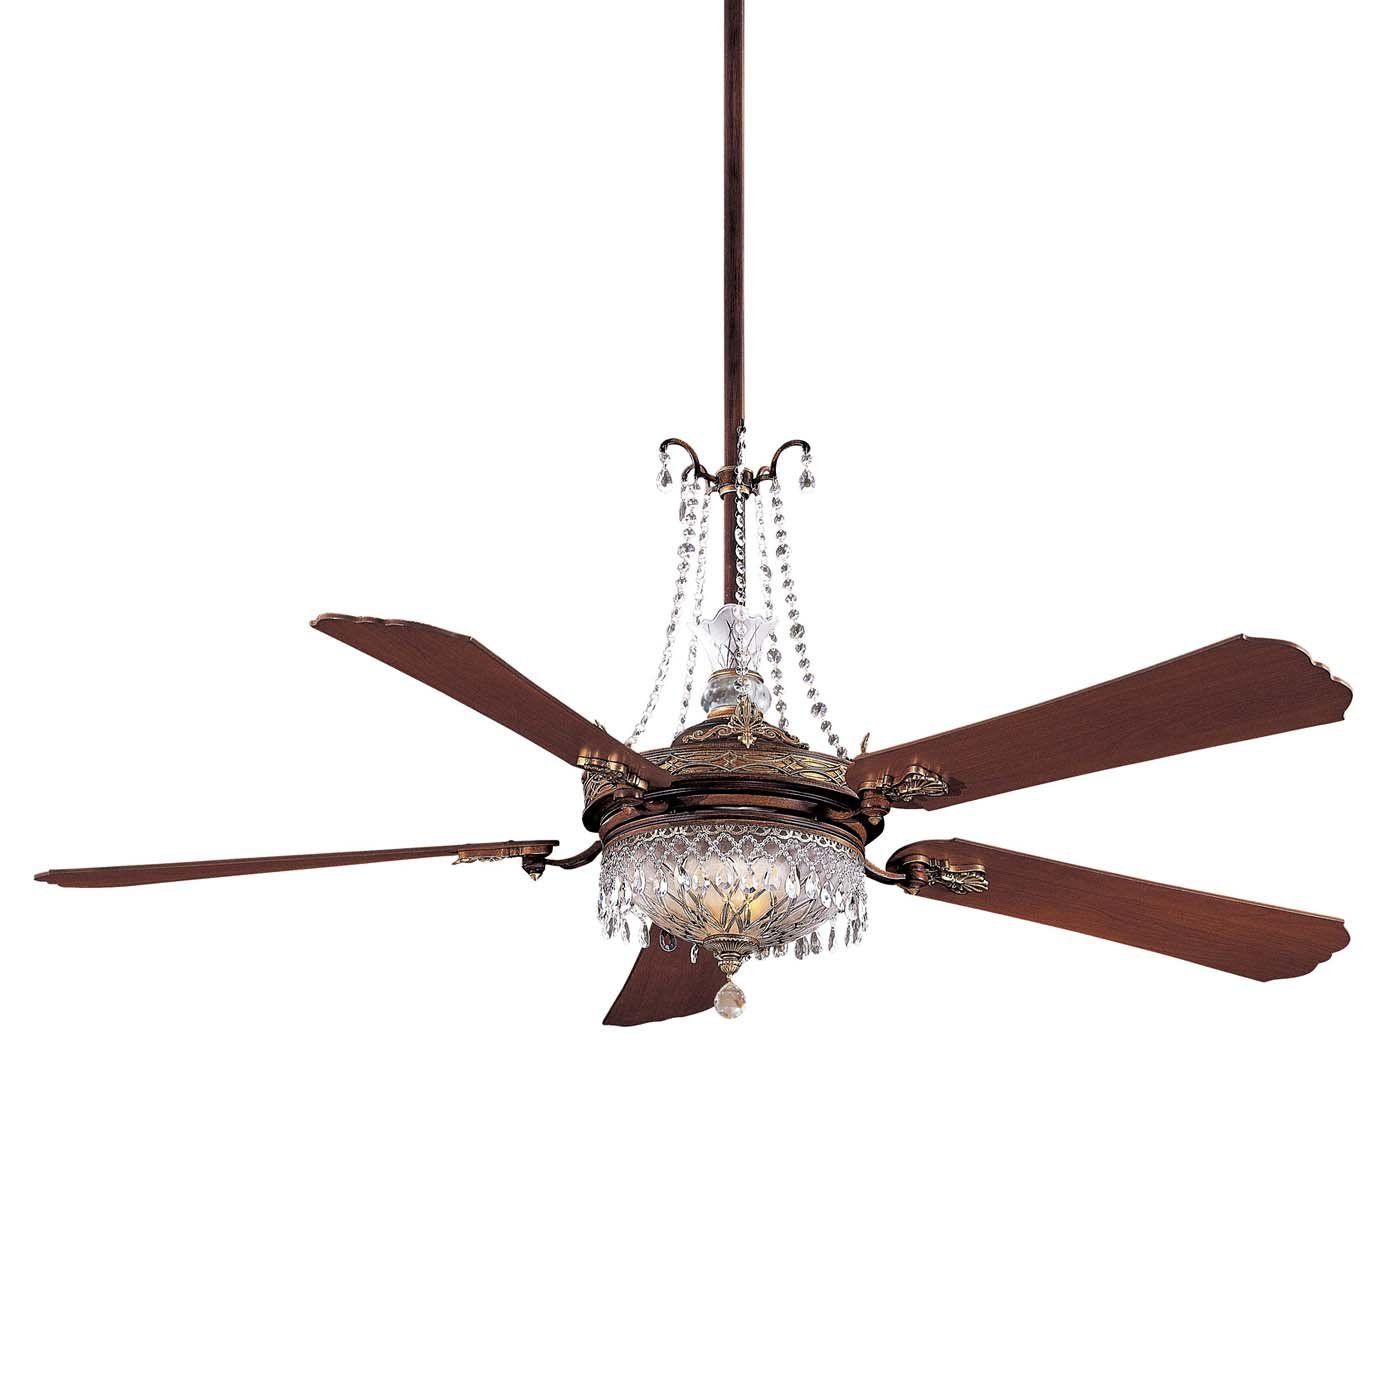 Shop Minka Aire F900 BCW 7 Light 68 in Cristafano Ceiling Fan at